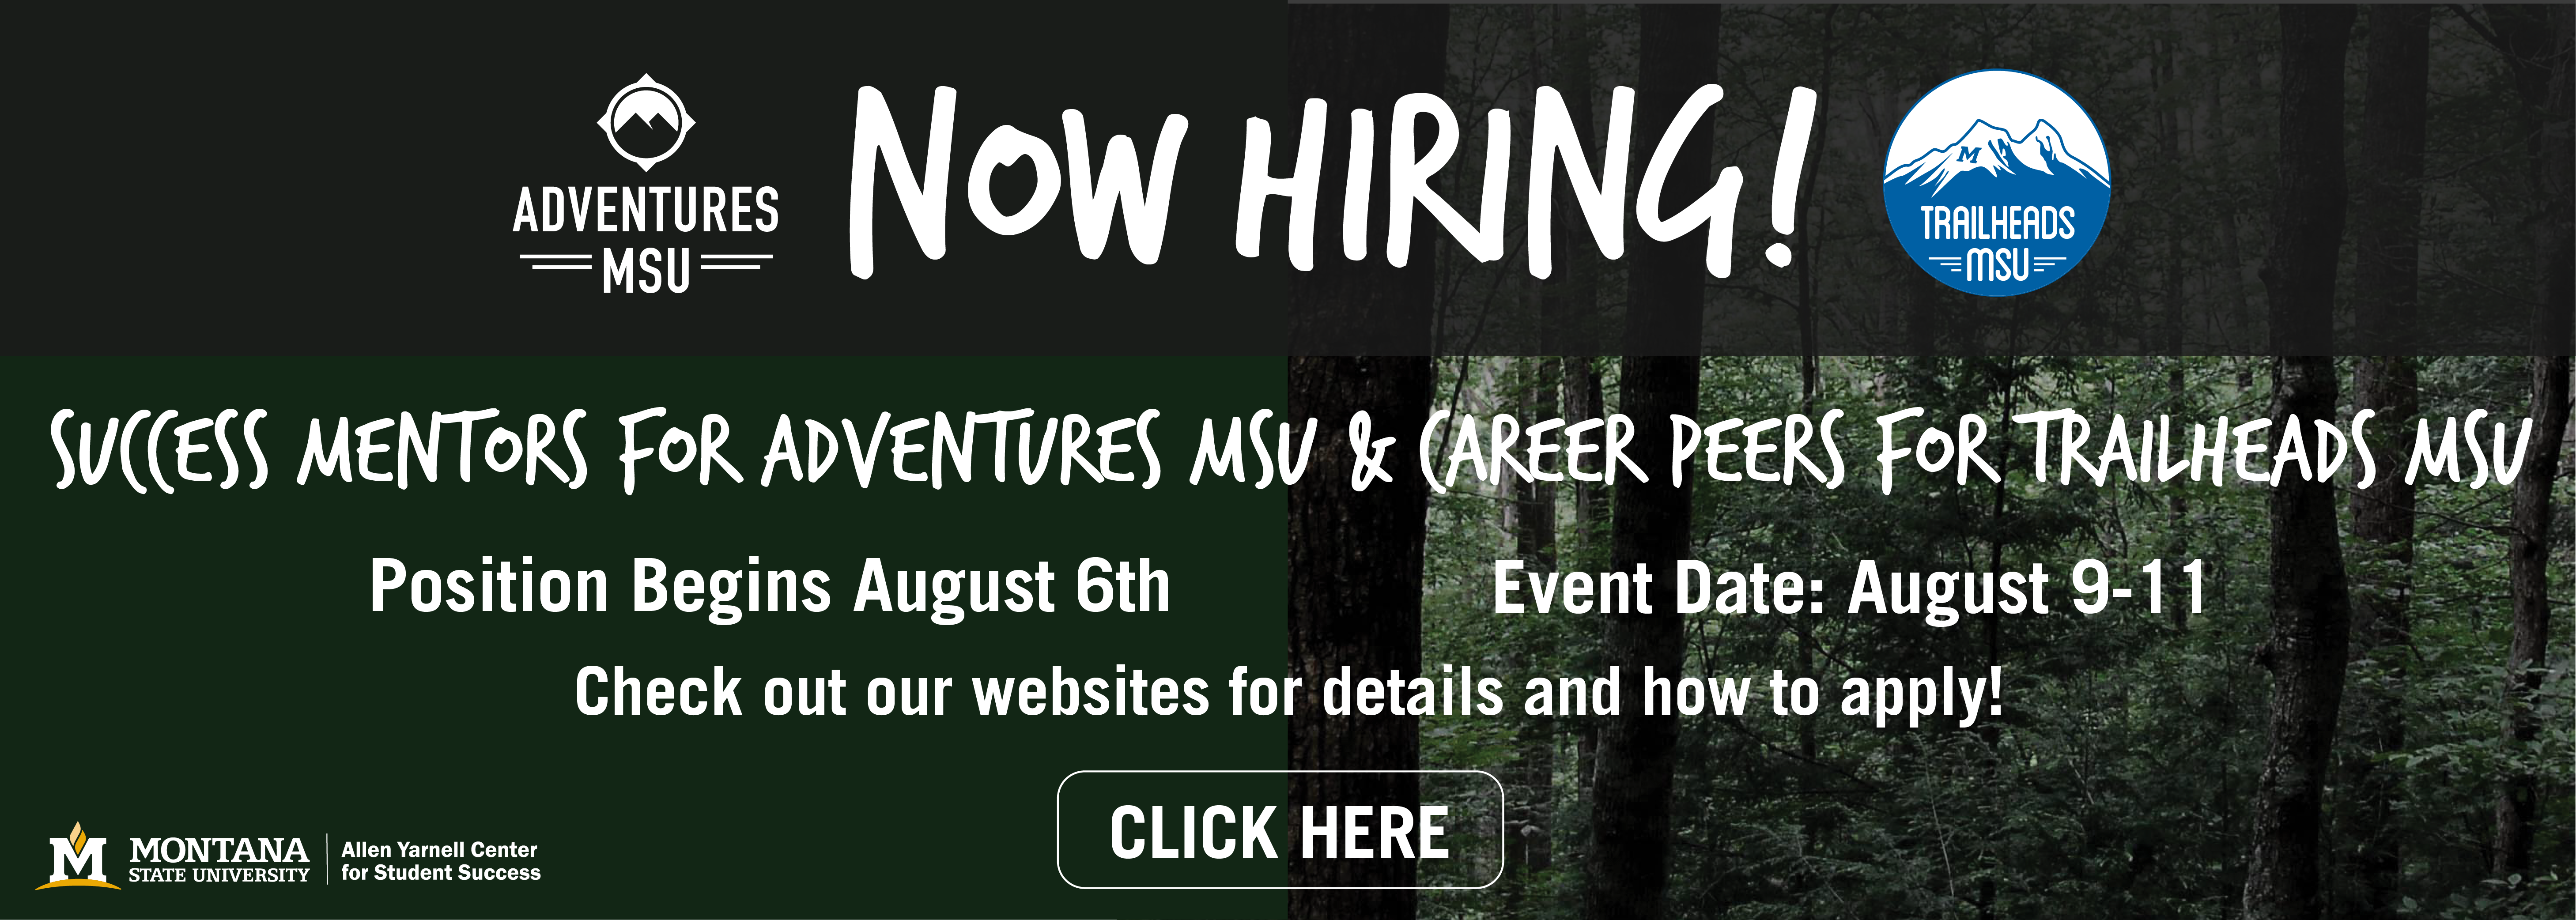 Now Hiring! success mentors for adventures MSU and career peers for Trailheads MSU.  Position begins August 6th.  event date august 9-11.  check out our website for details and how to apply